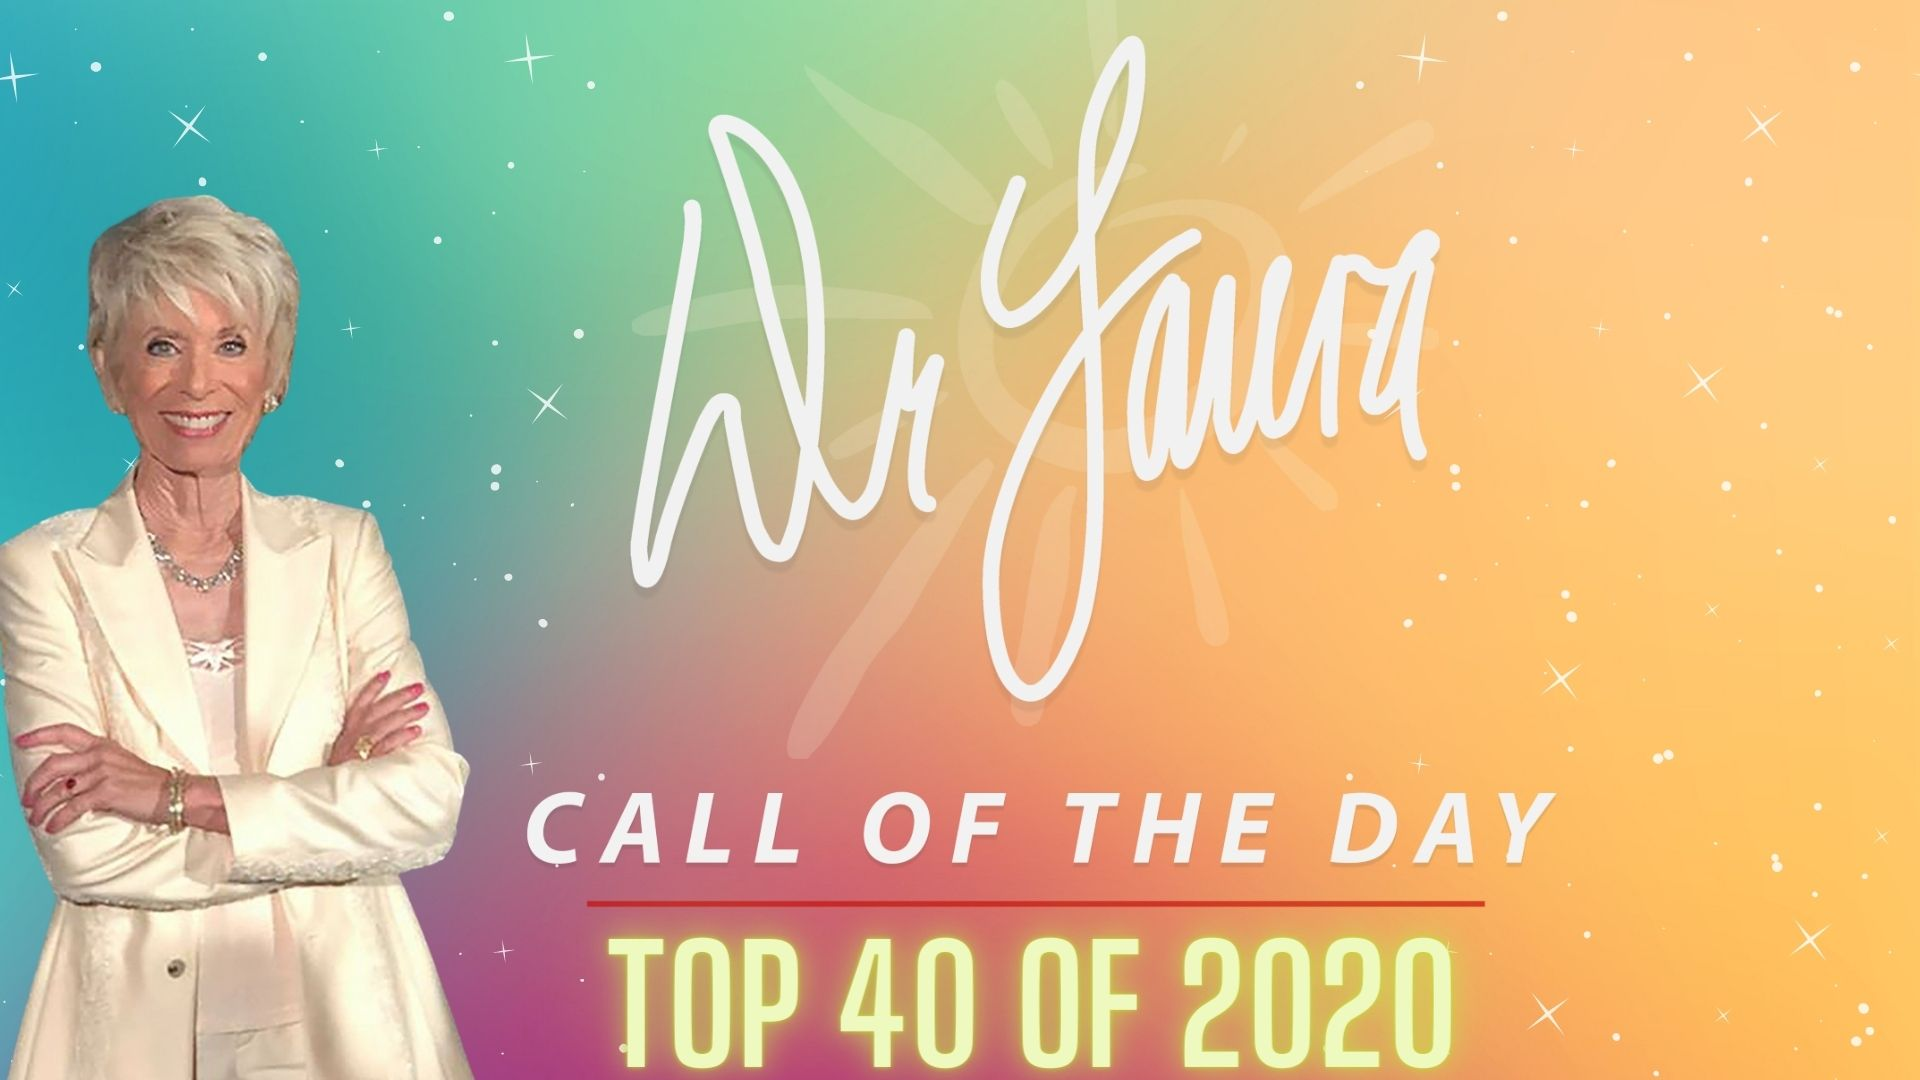 Call of the Day Podcast: Top 40 of 2020